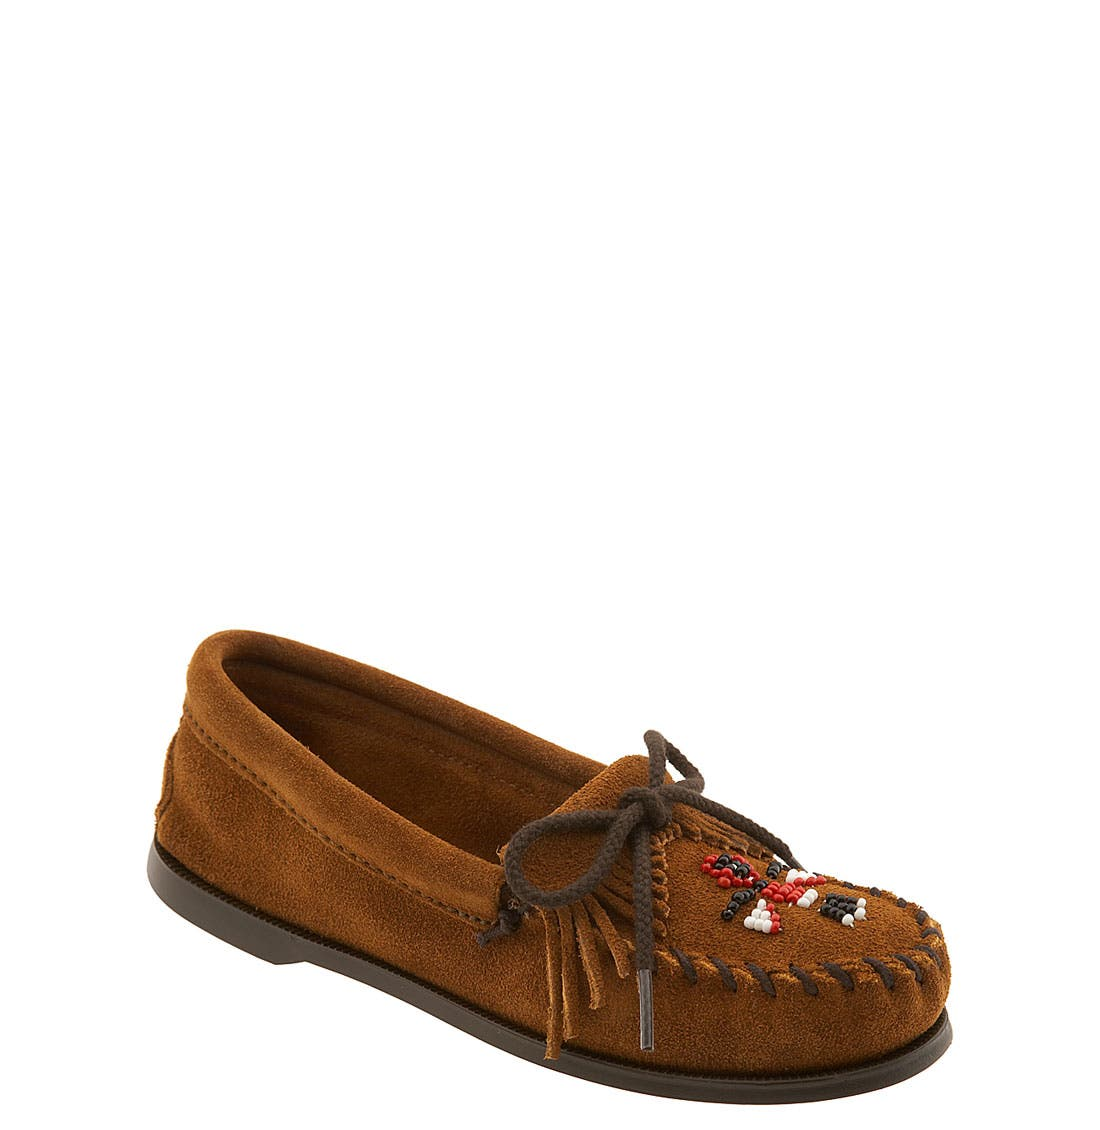 Main Image - Minnetonka 'Thunderbird' Moccasin (Toddler, Little Kid & Big Kid)